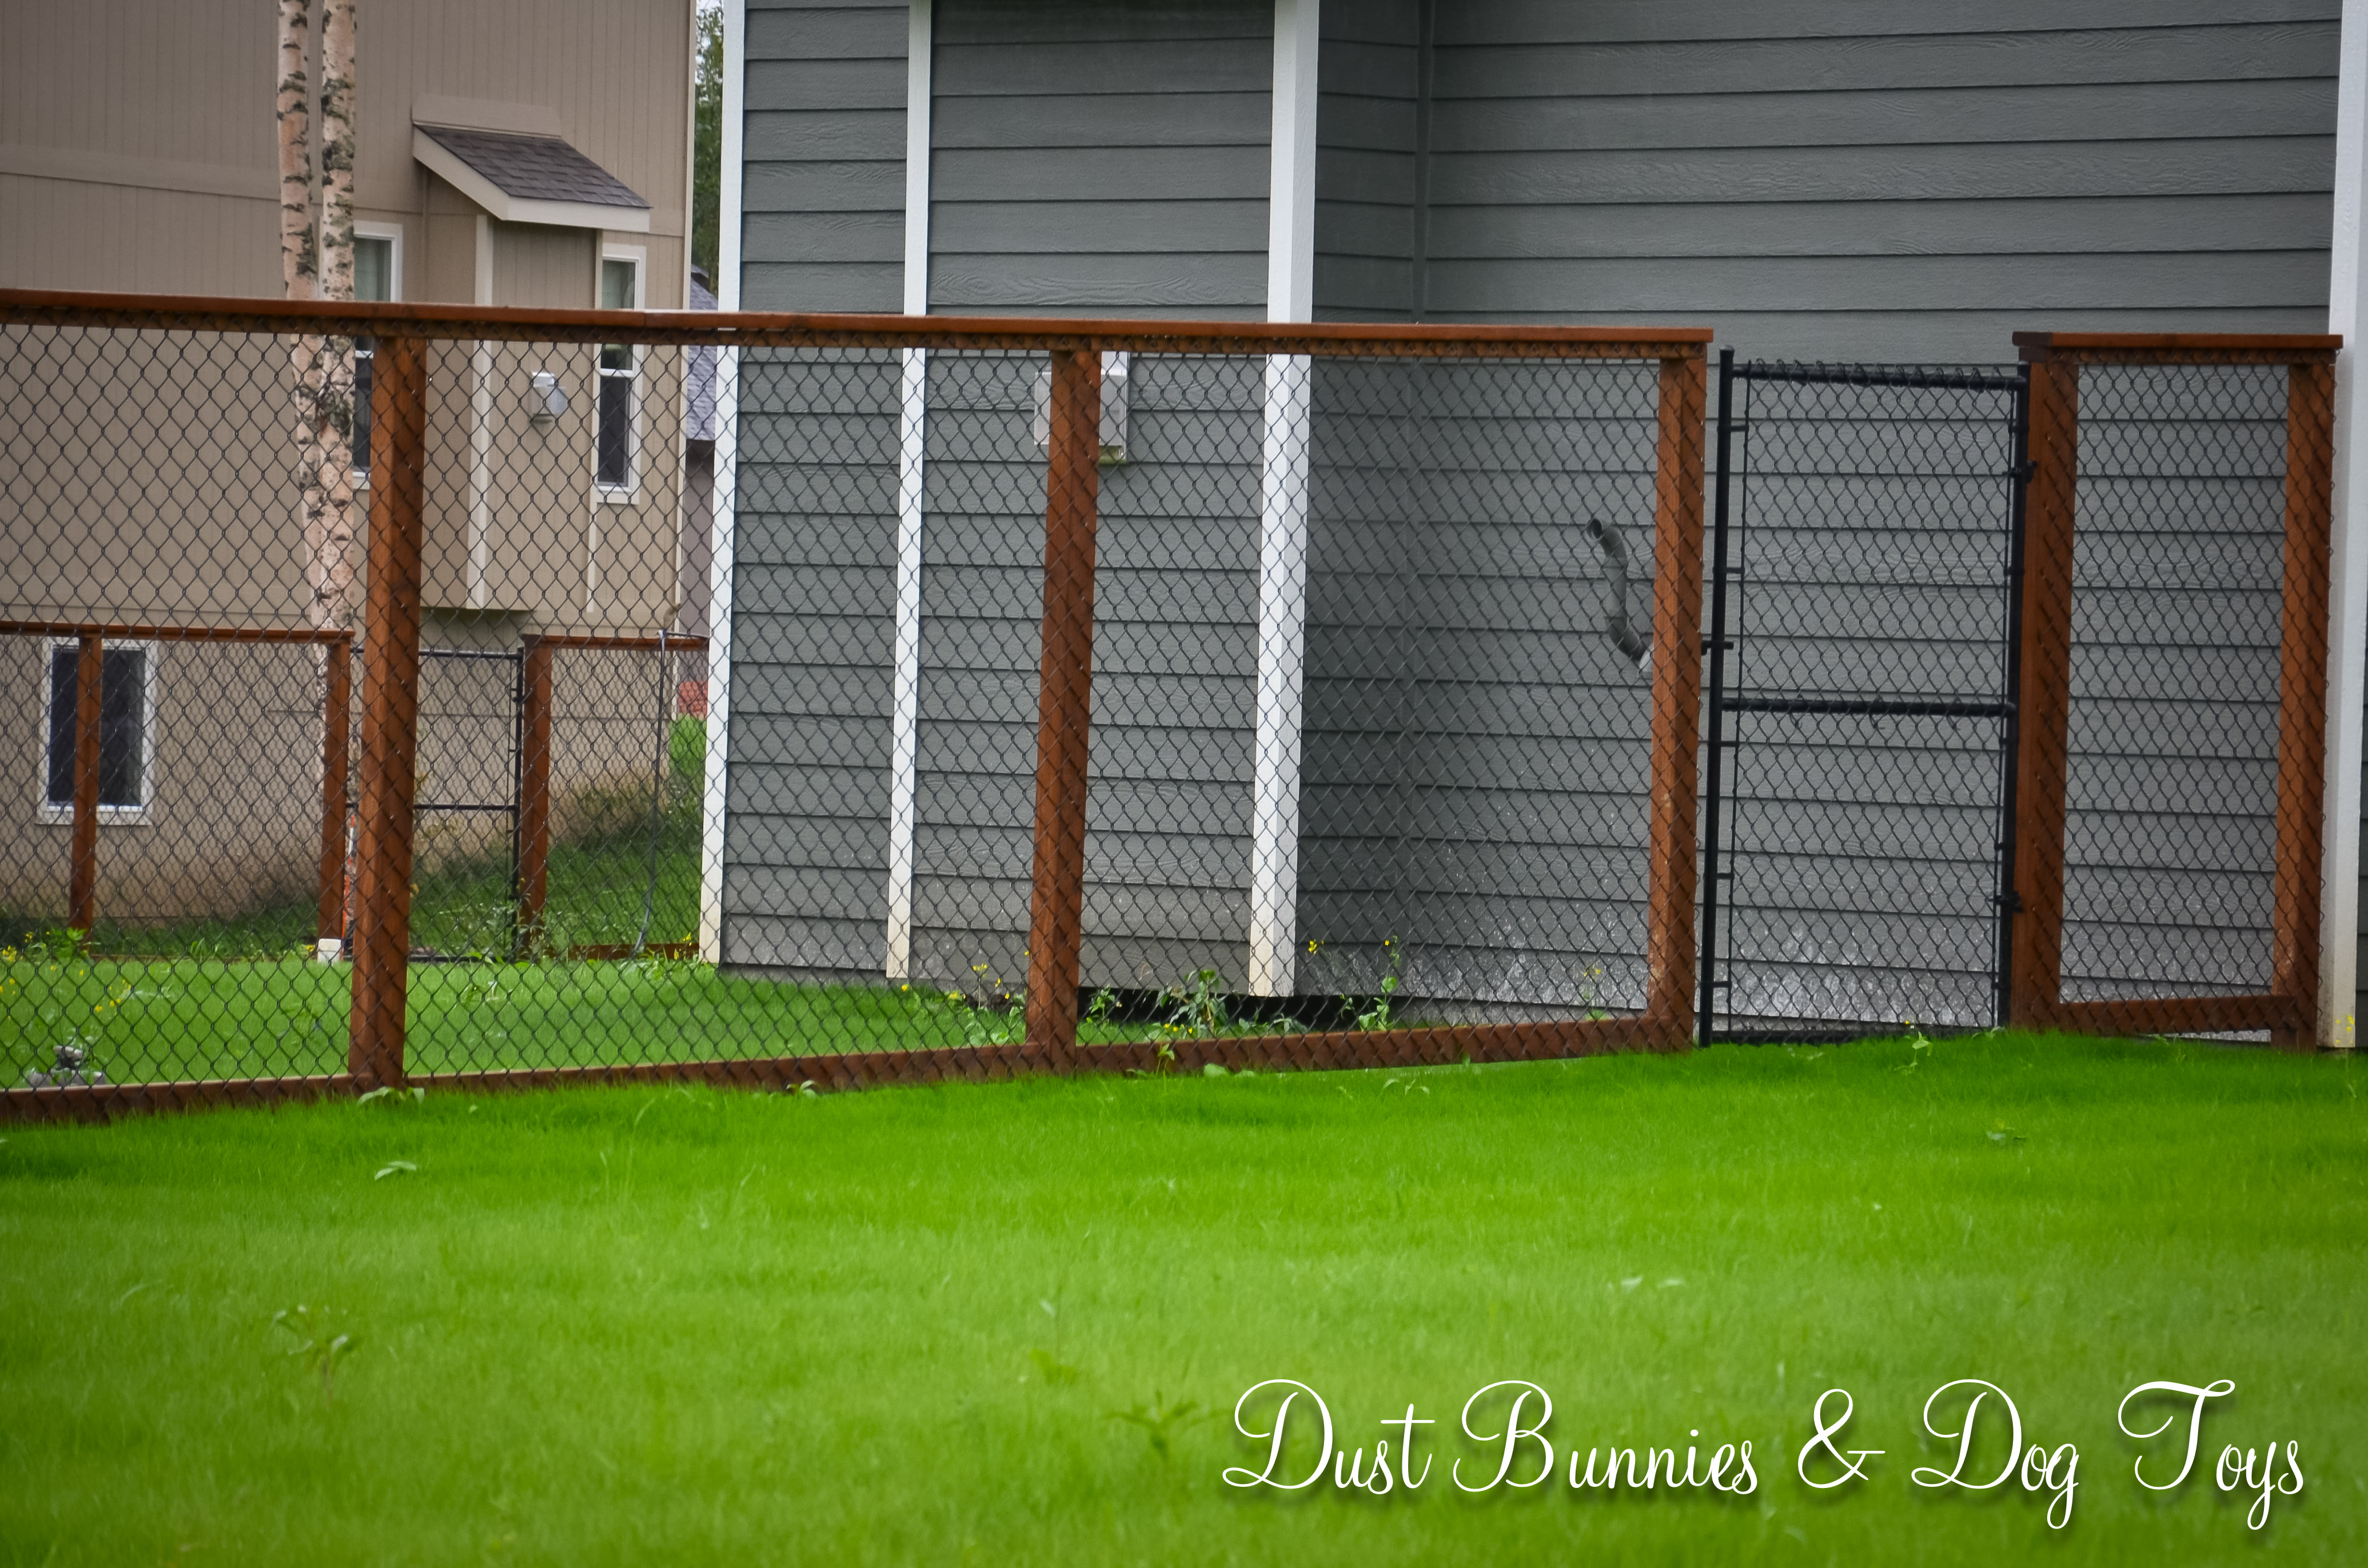 Don T Fence Me In Dust Bunnies And Dog Toys